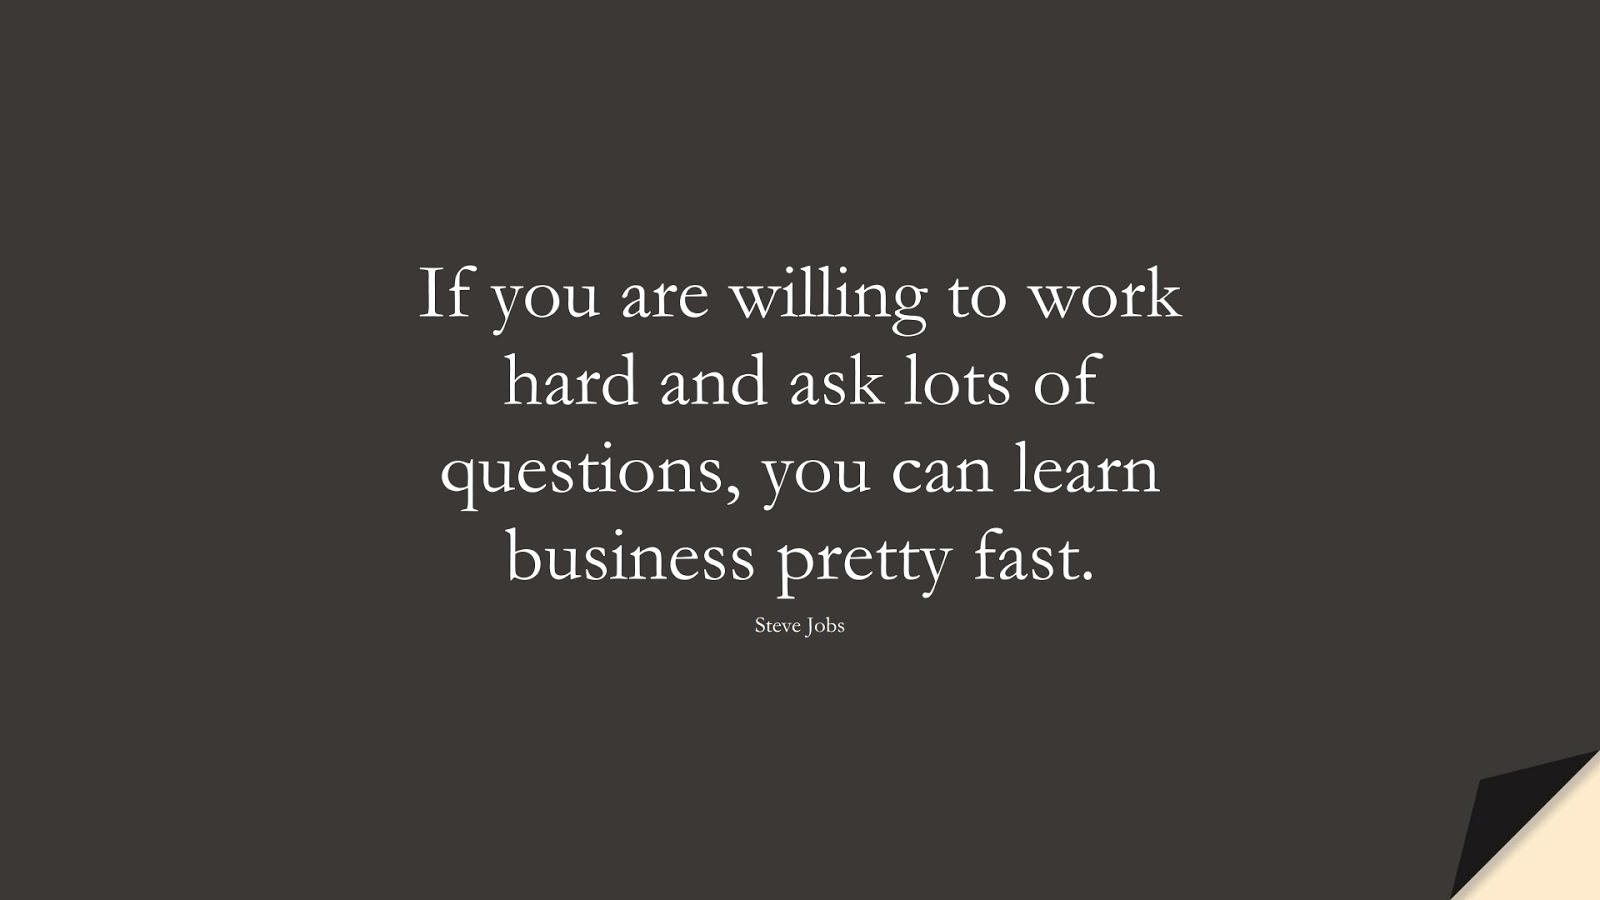 If you are willing to work hard and ask lots of questions, you can learn business pretty fast. (Steve Jobs);  #SteveJobsQuotes